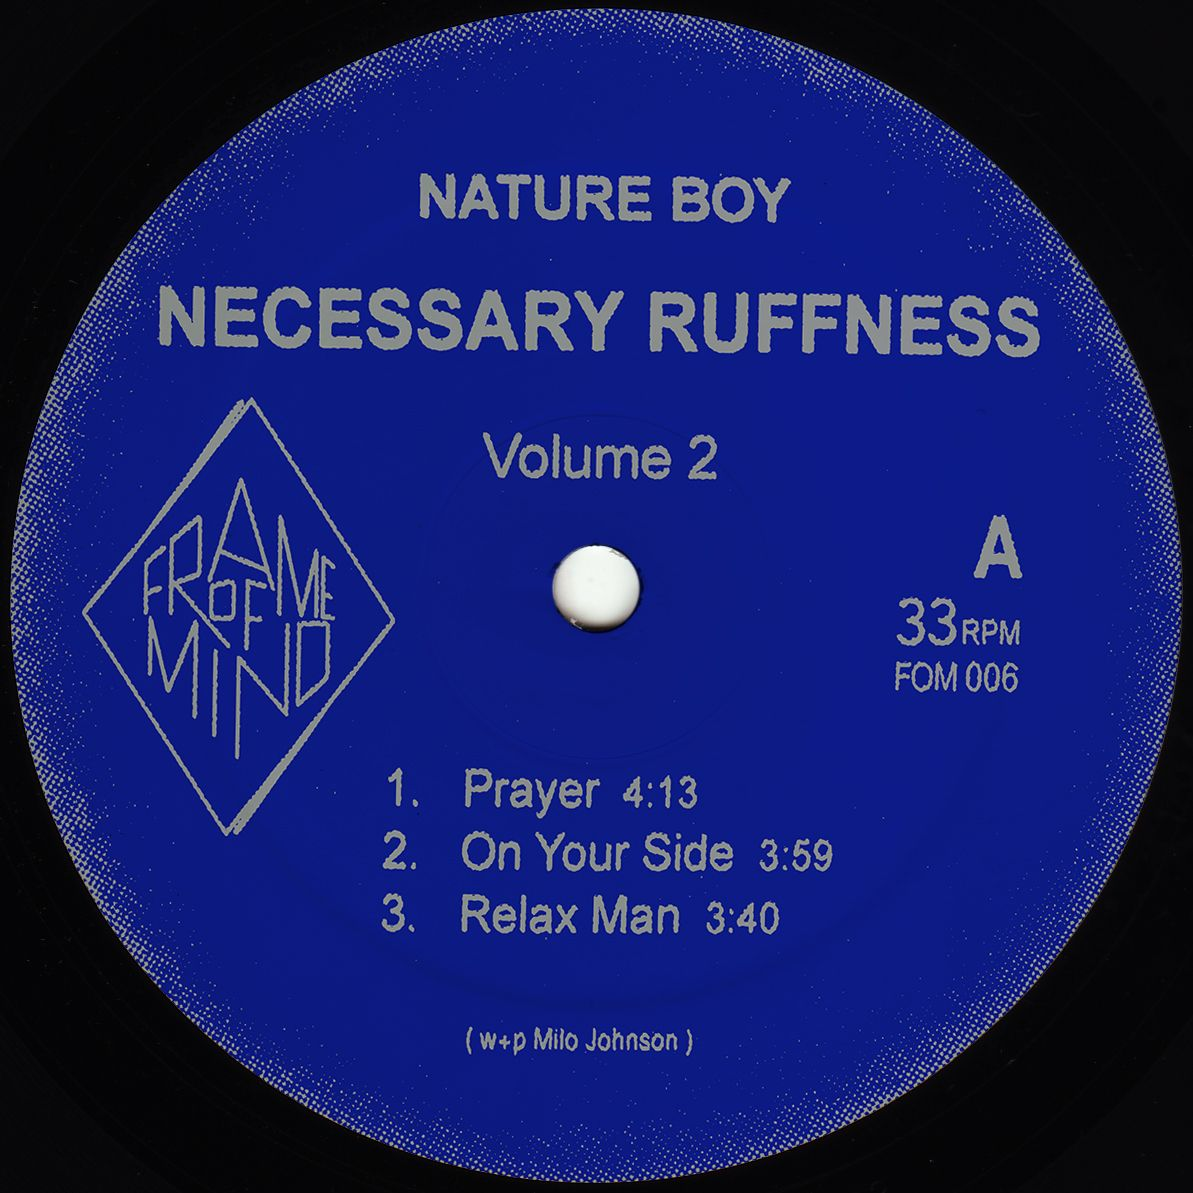 Nature Boy - Necessary Ruffness Vol. 2